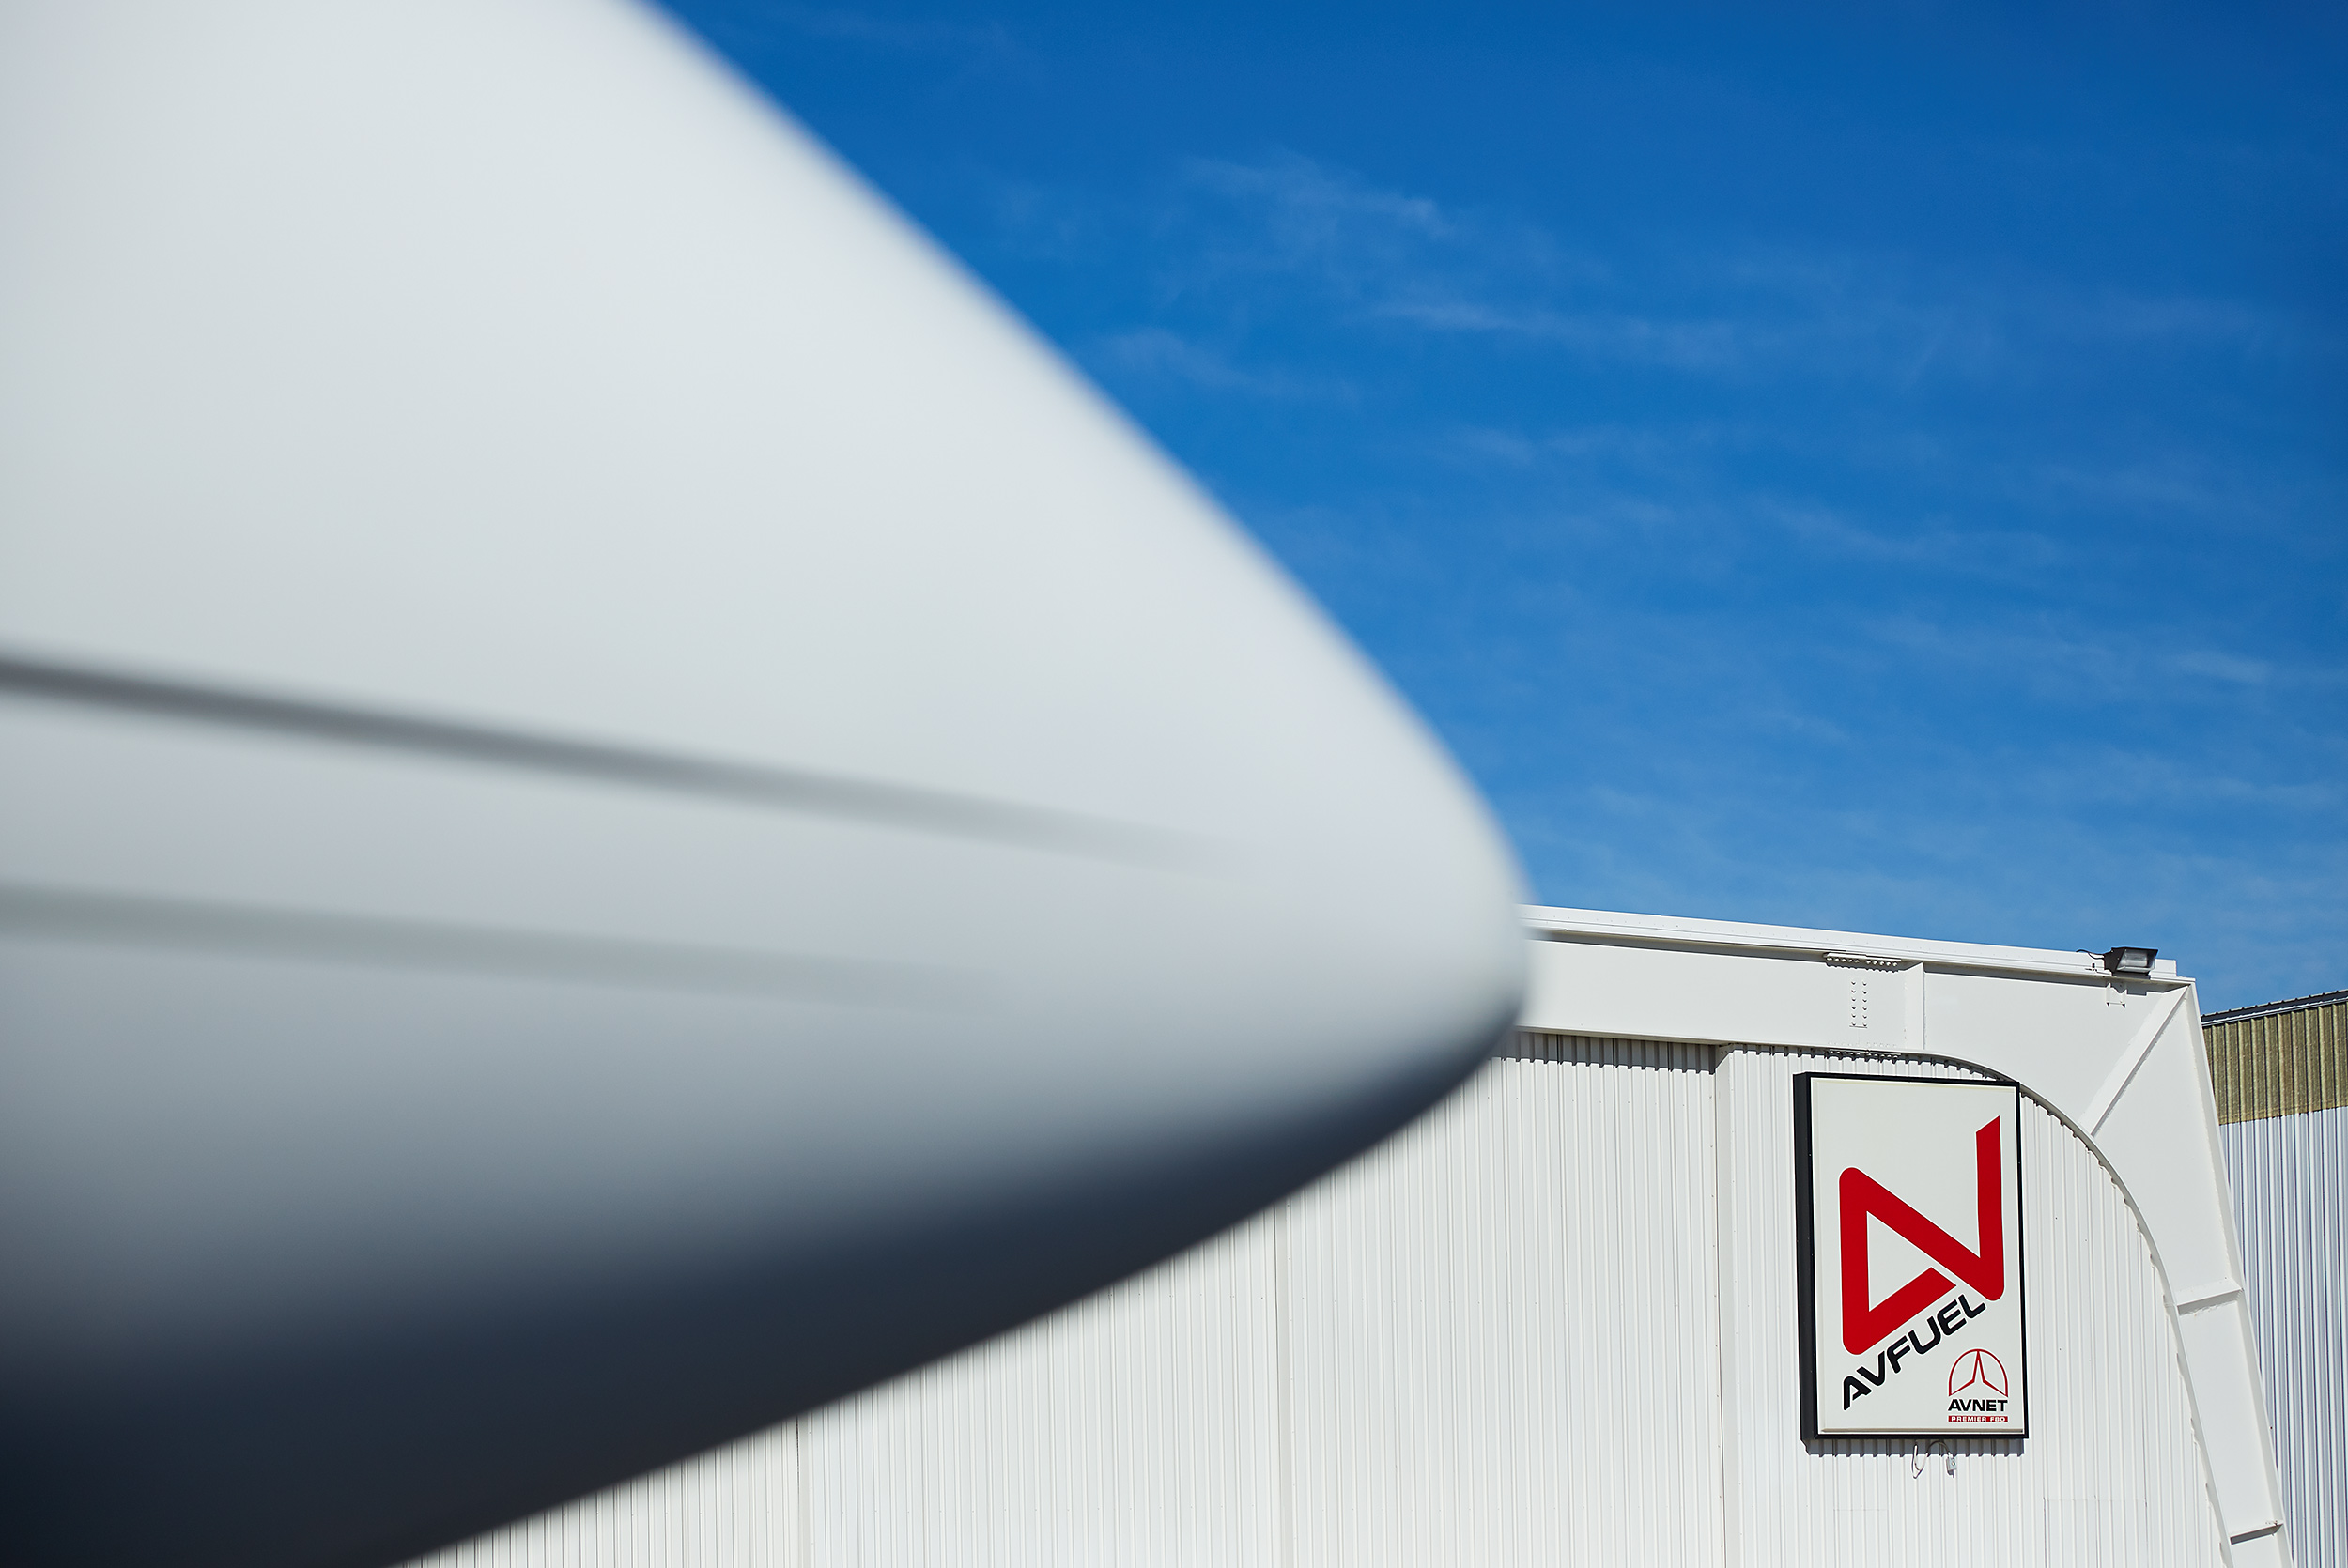 Avfuel hanger - Steve Craft Photography - Phoenix Arizona Commercial Photographer